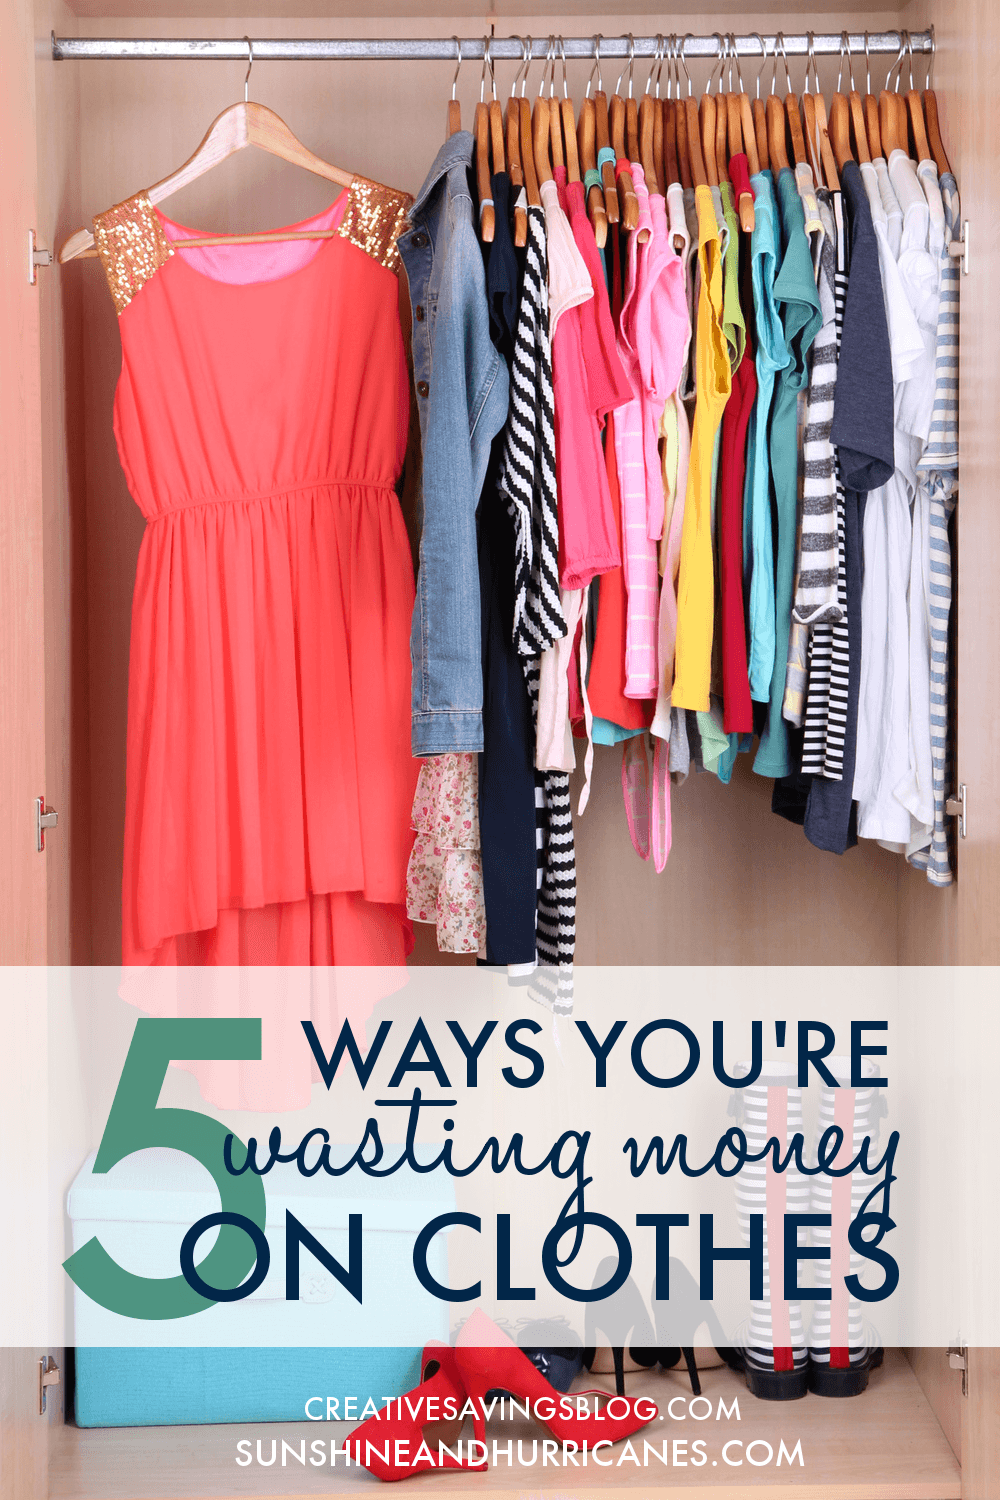 Whether you are all about style or you like to keep it simple, filling our wardrobes can be a big chunk of our spending. Even if you are a true fashionista, you may still be surprised to learn the ways you are wasting money on clothes. You can look stylish, while still be smart about money by following these frugal fashionista tips. 5 Ways You're Wasting Money on Clothes. SunshineandHurricanes.com